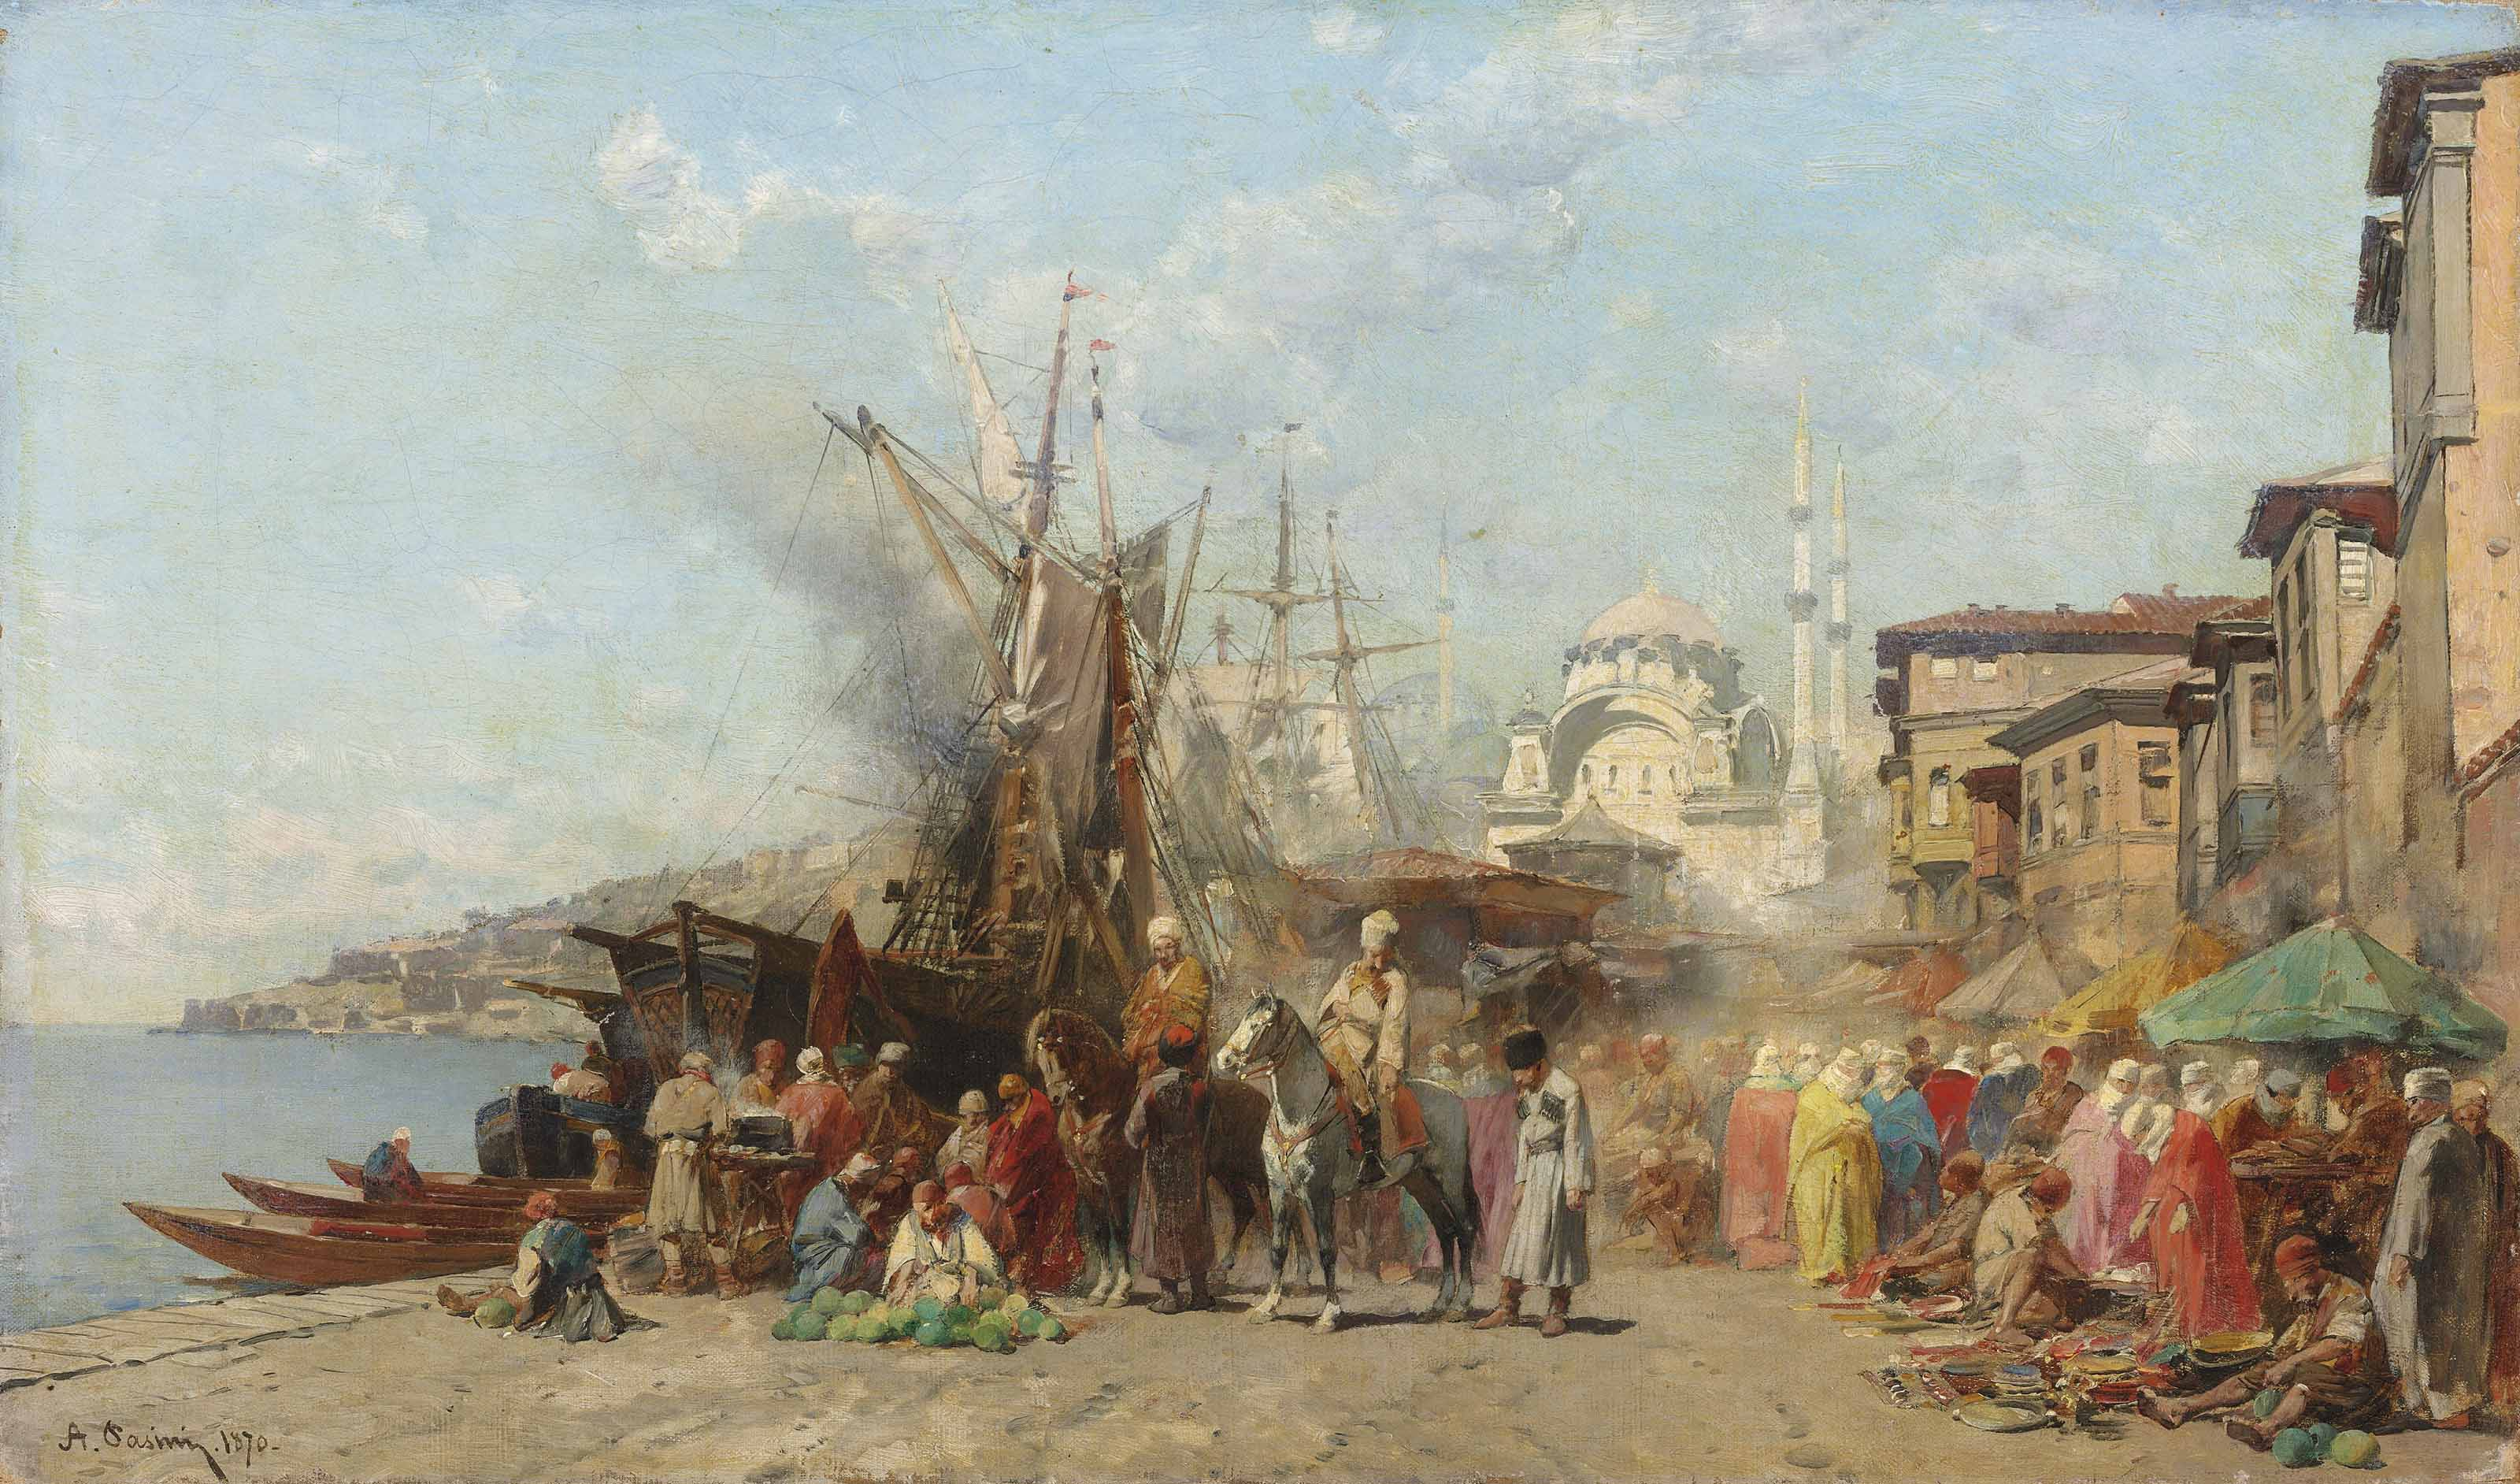 A market before Nusretiye Camii mosque in Tophane, Constantinople